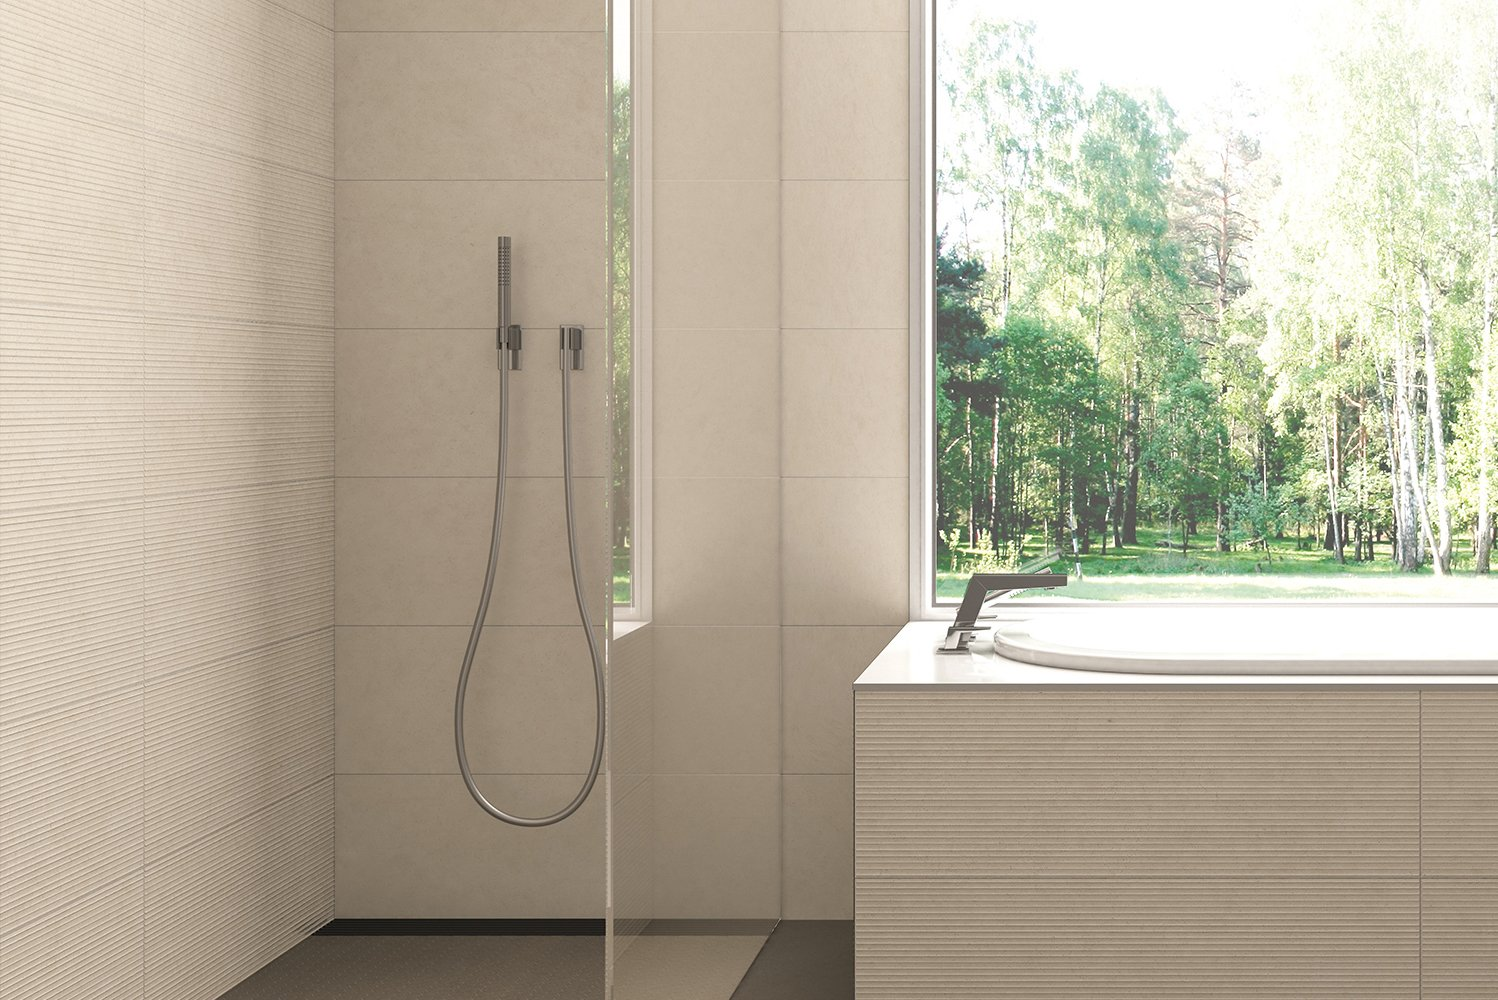 The tile's grains and fossil spots have subtle variations between mattes and glosses to mimic real Catalan limestone.